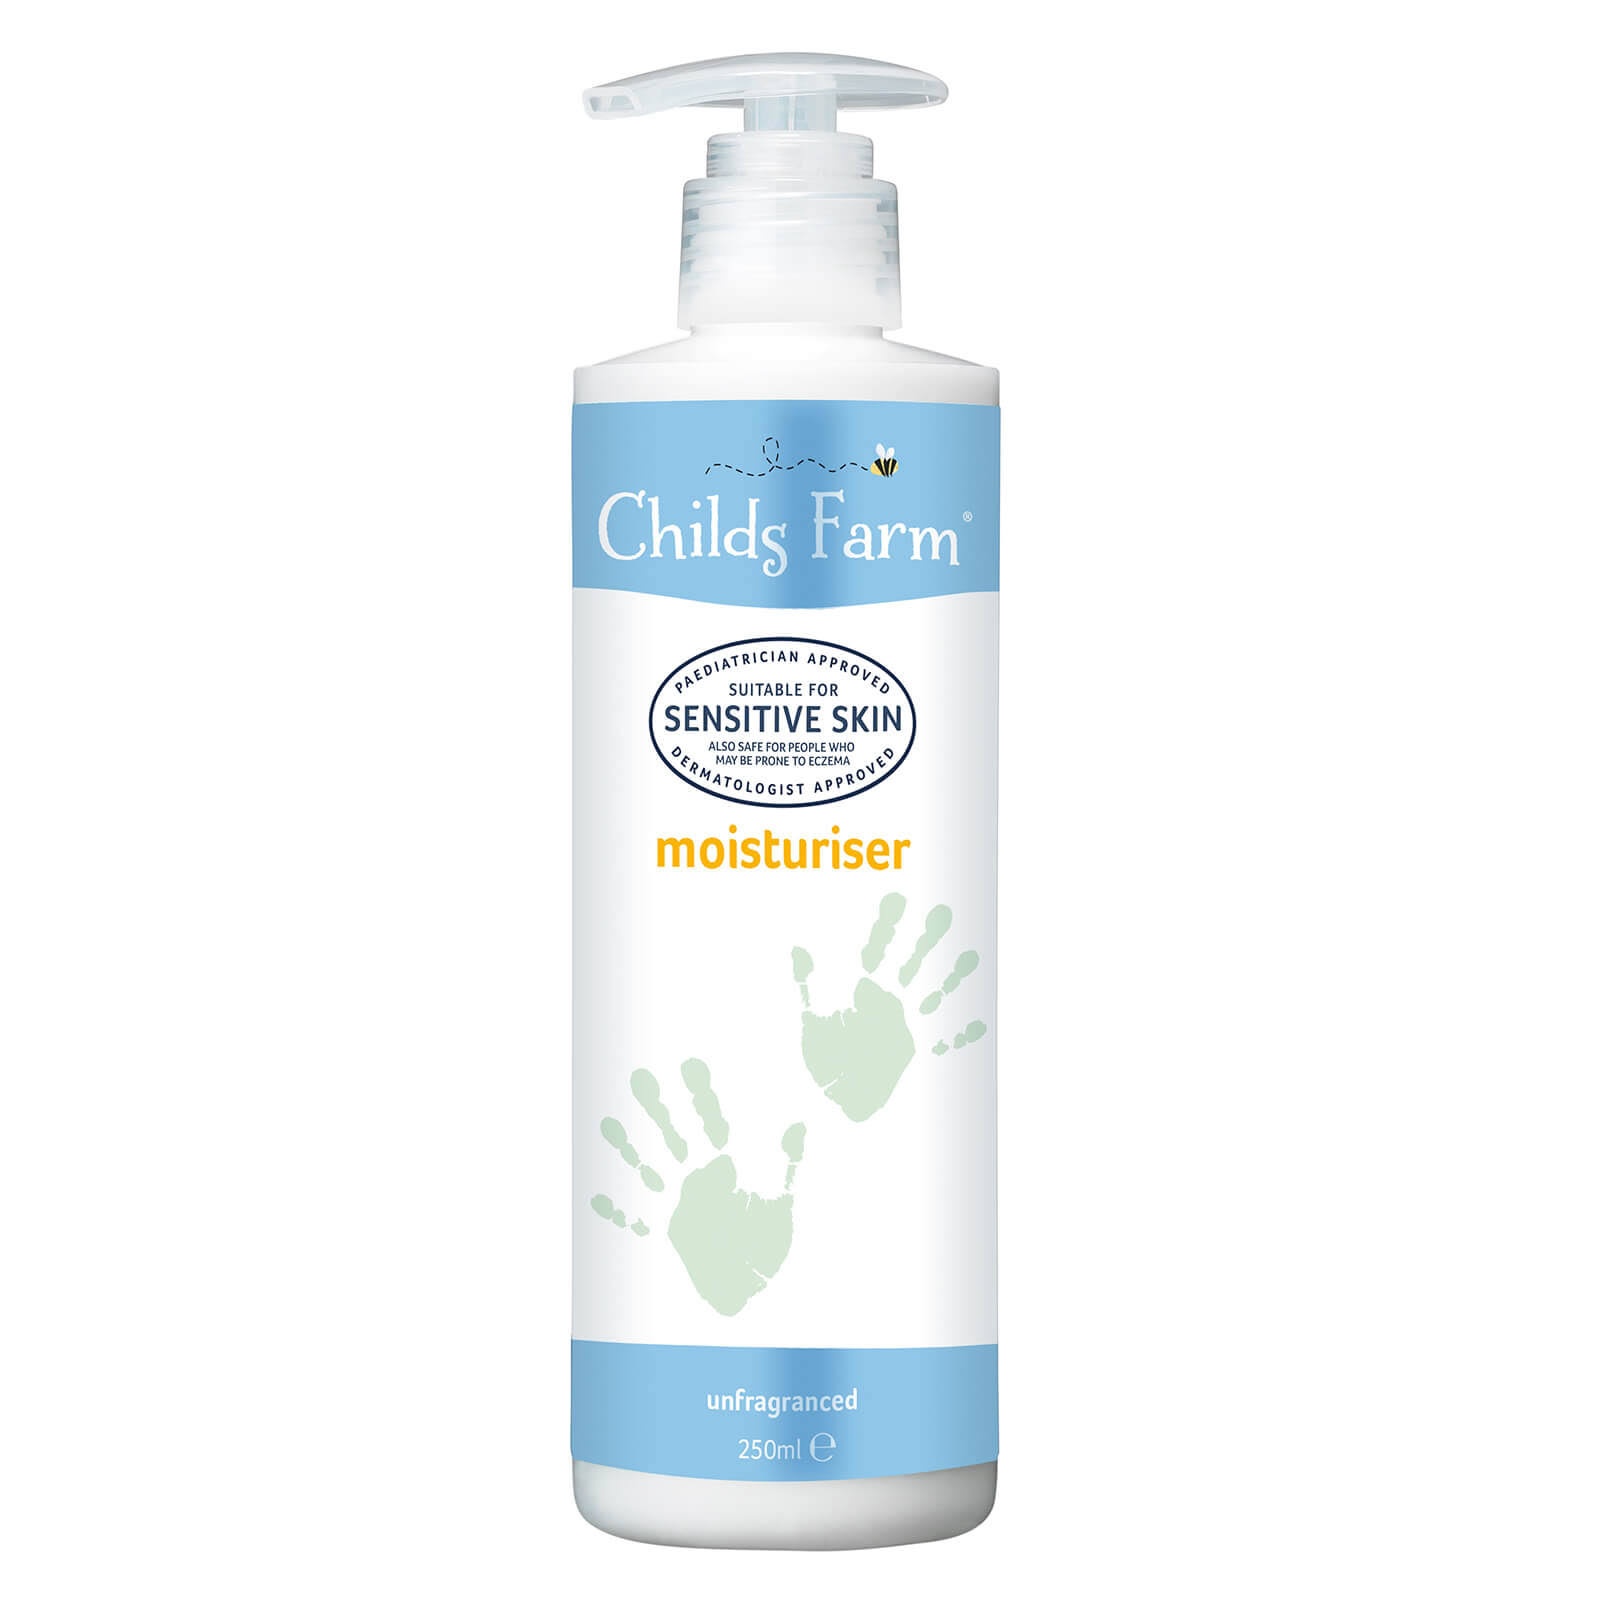 Childs Farm Moisturiser Unfragranced 250 ml